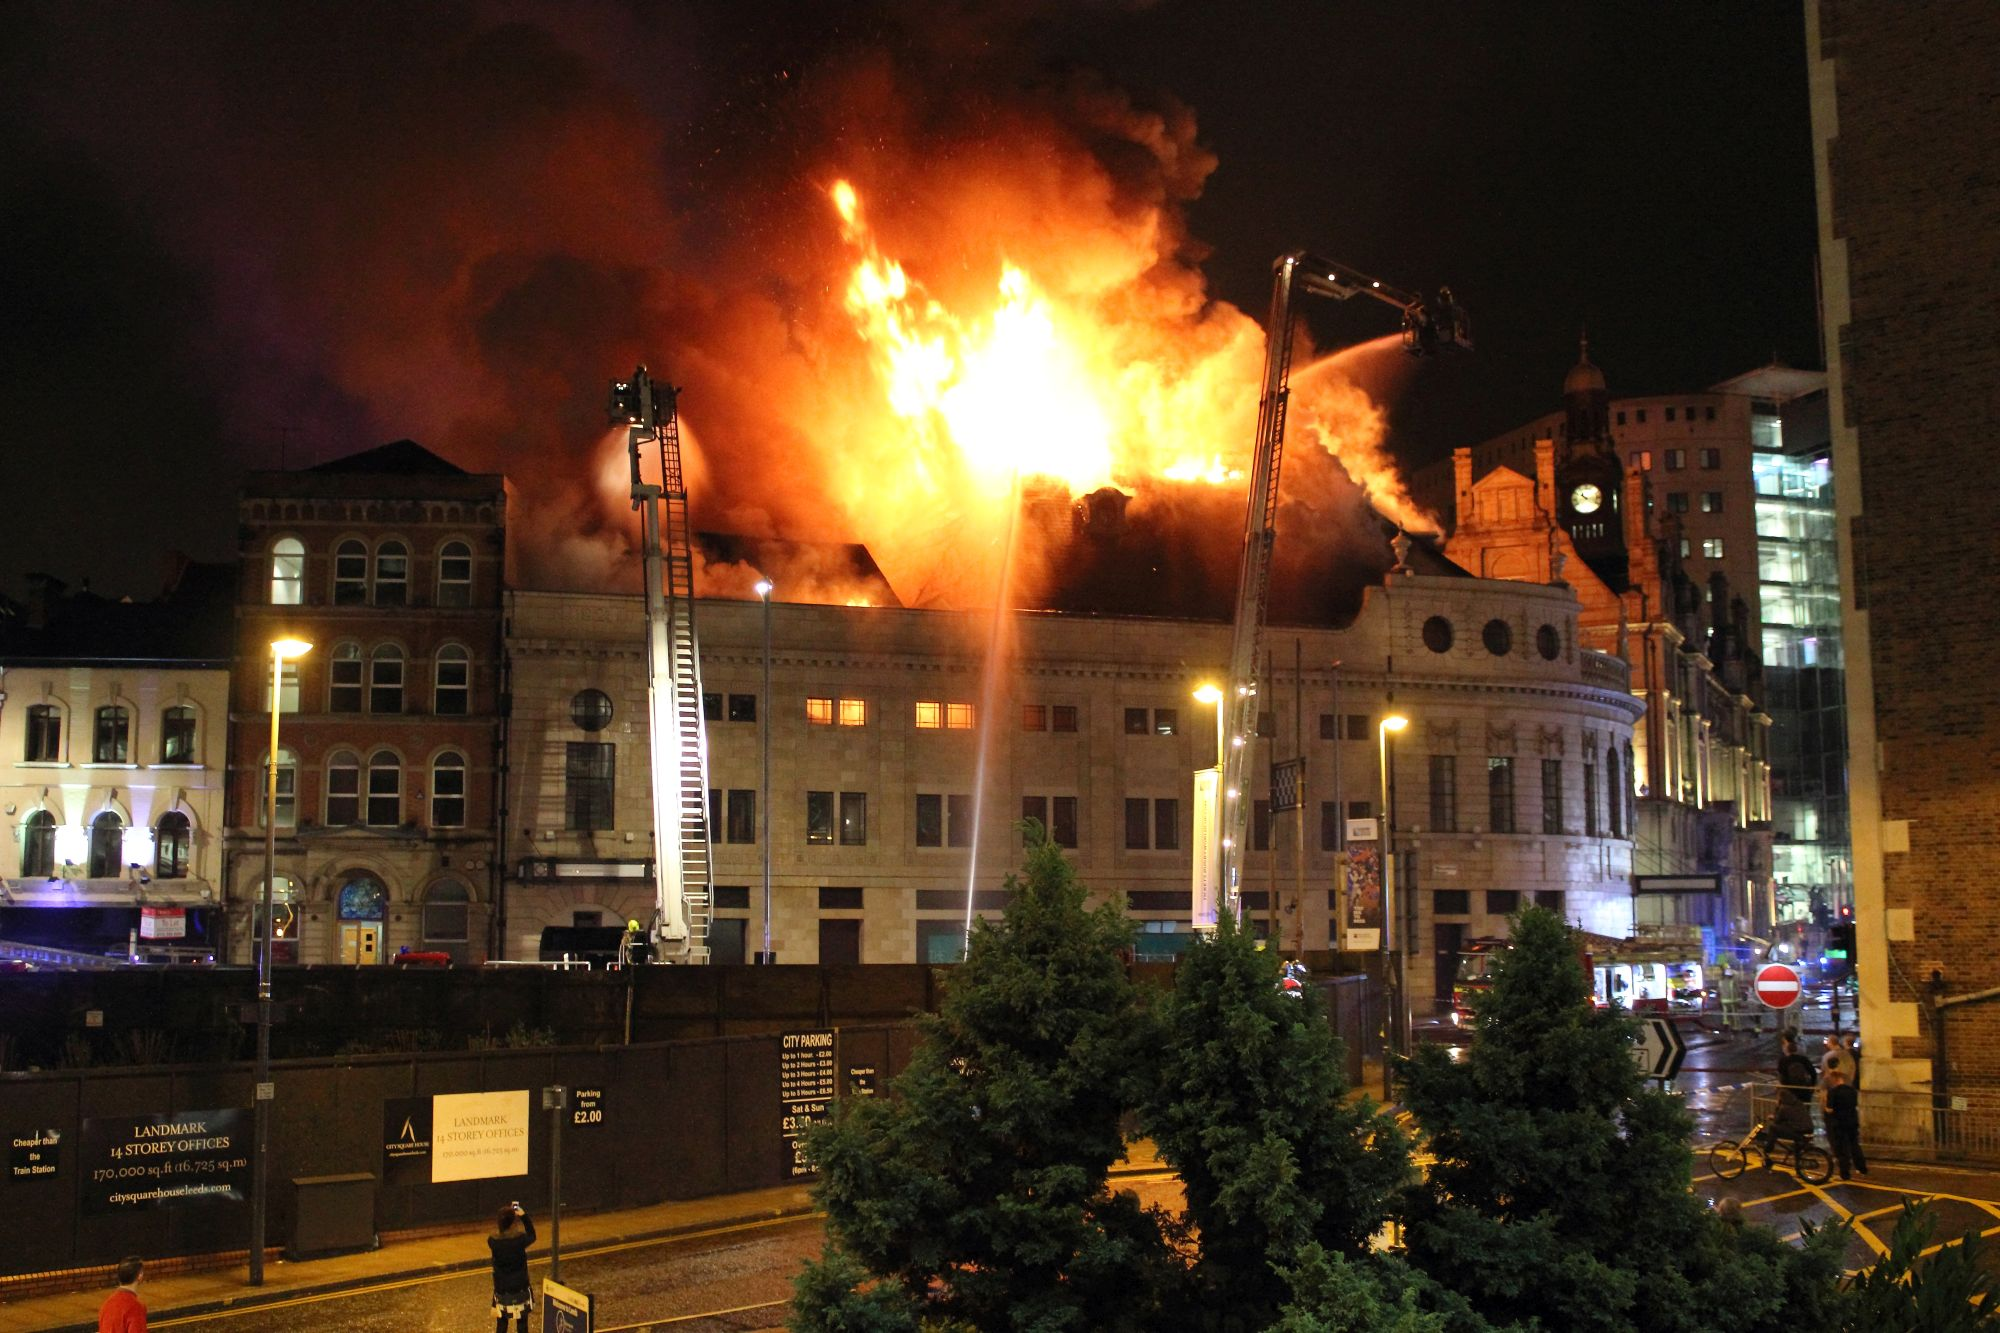 The Majestic Leeds Fire